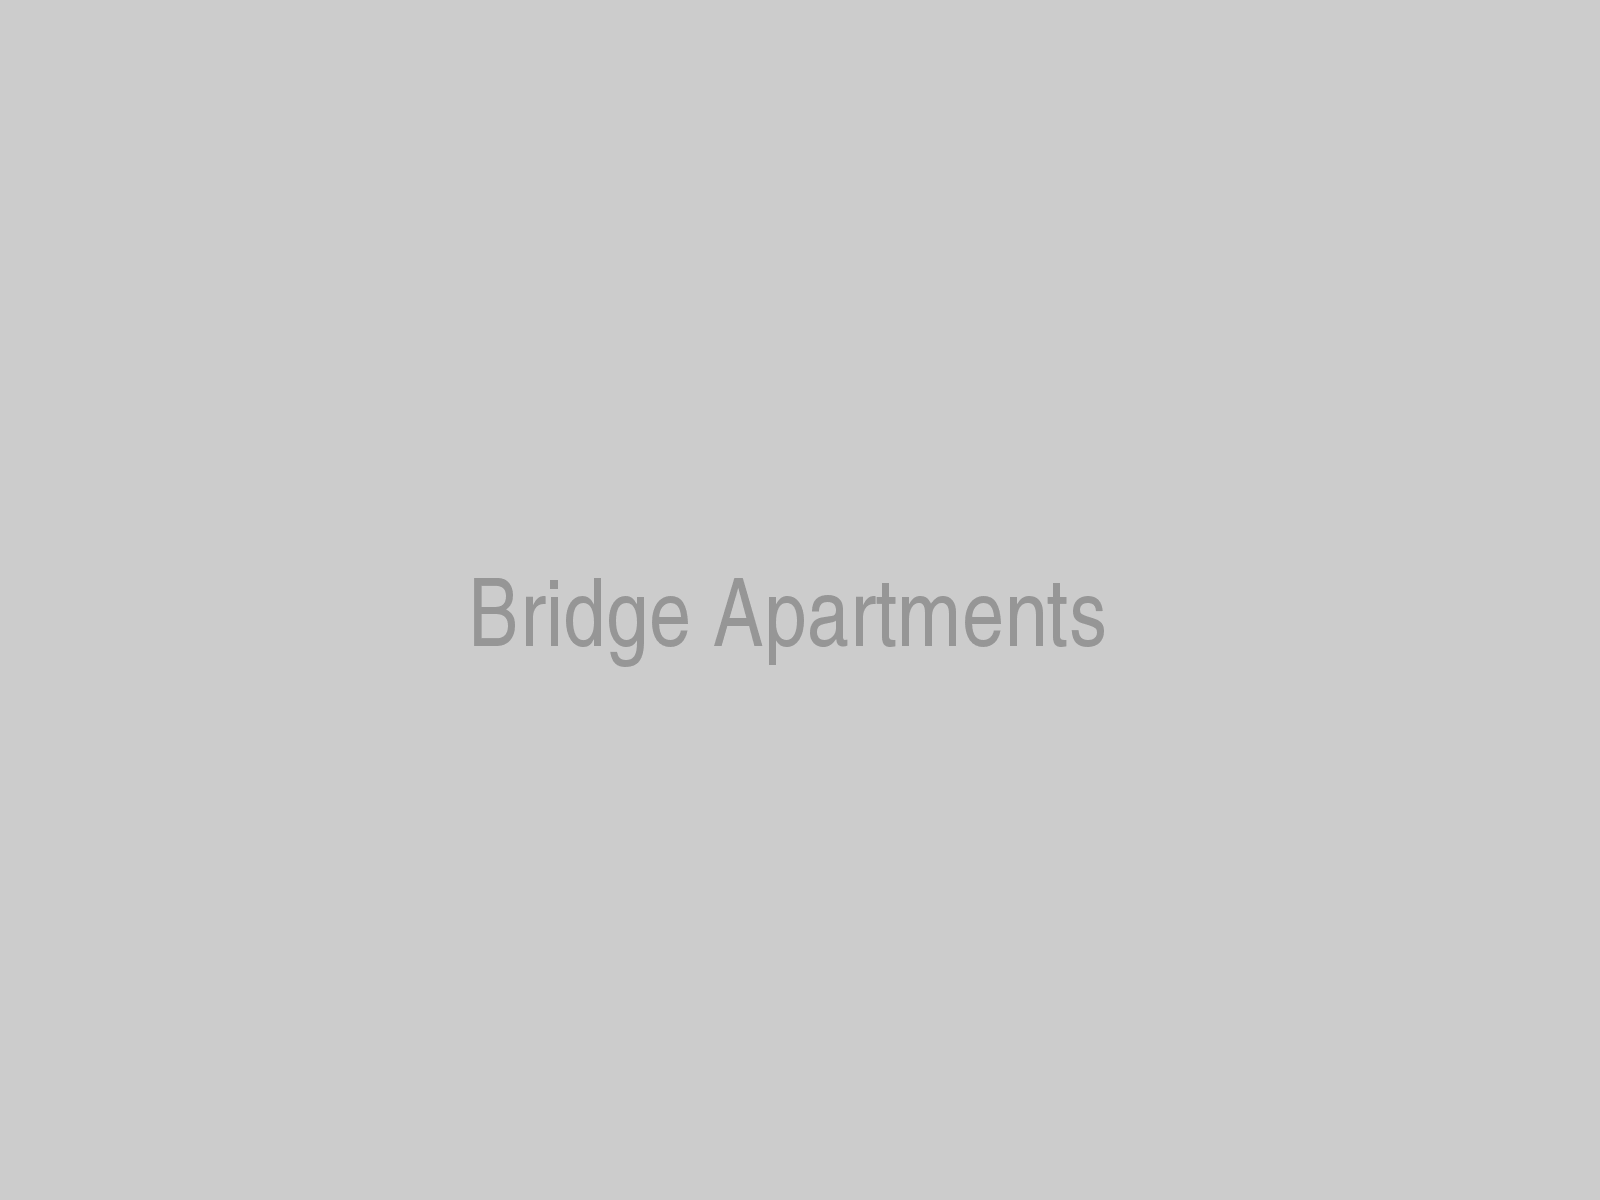 Bridge Apartments